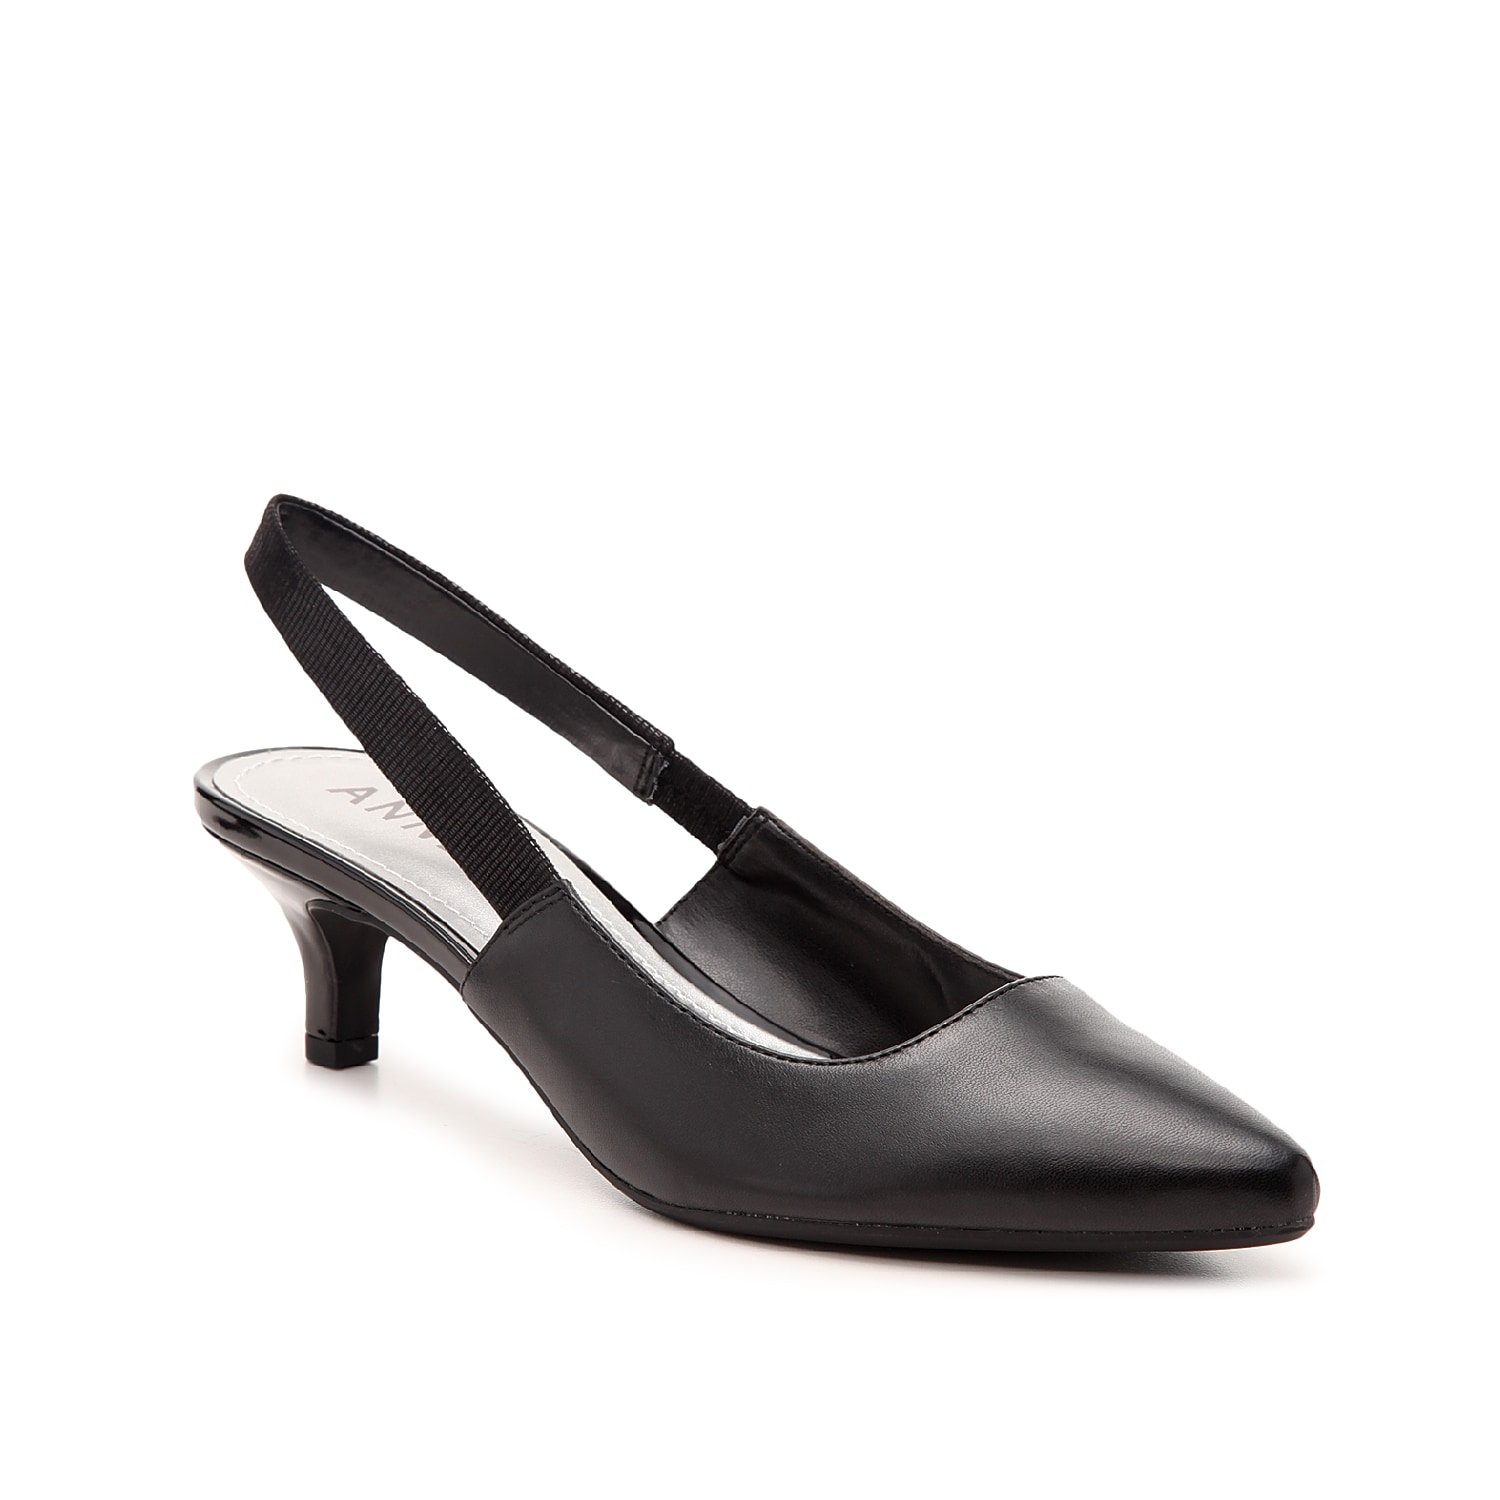 Be ready for any occasion with the Aileen pump from Anne Klein. These slingbacks feature a polished design and classic kitten heel to enhance slacks or a pencil skirt.